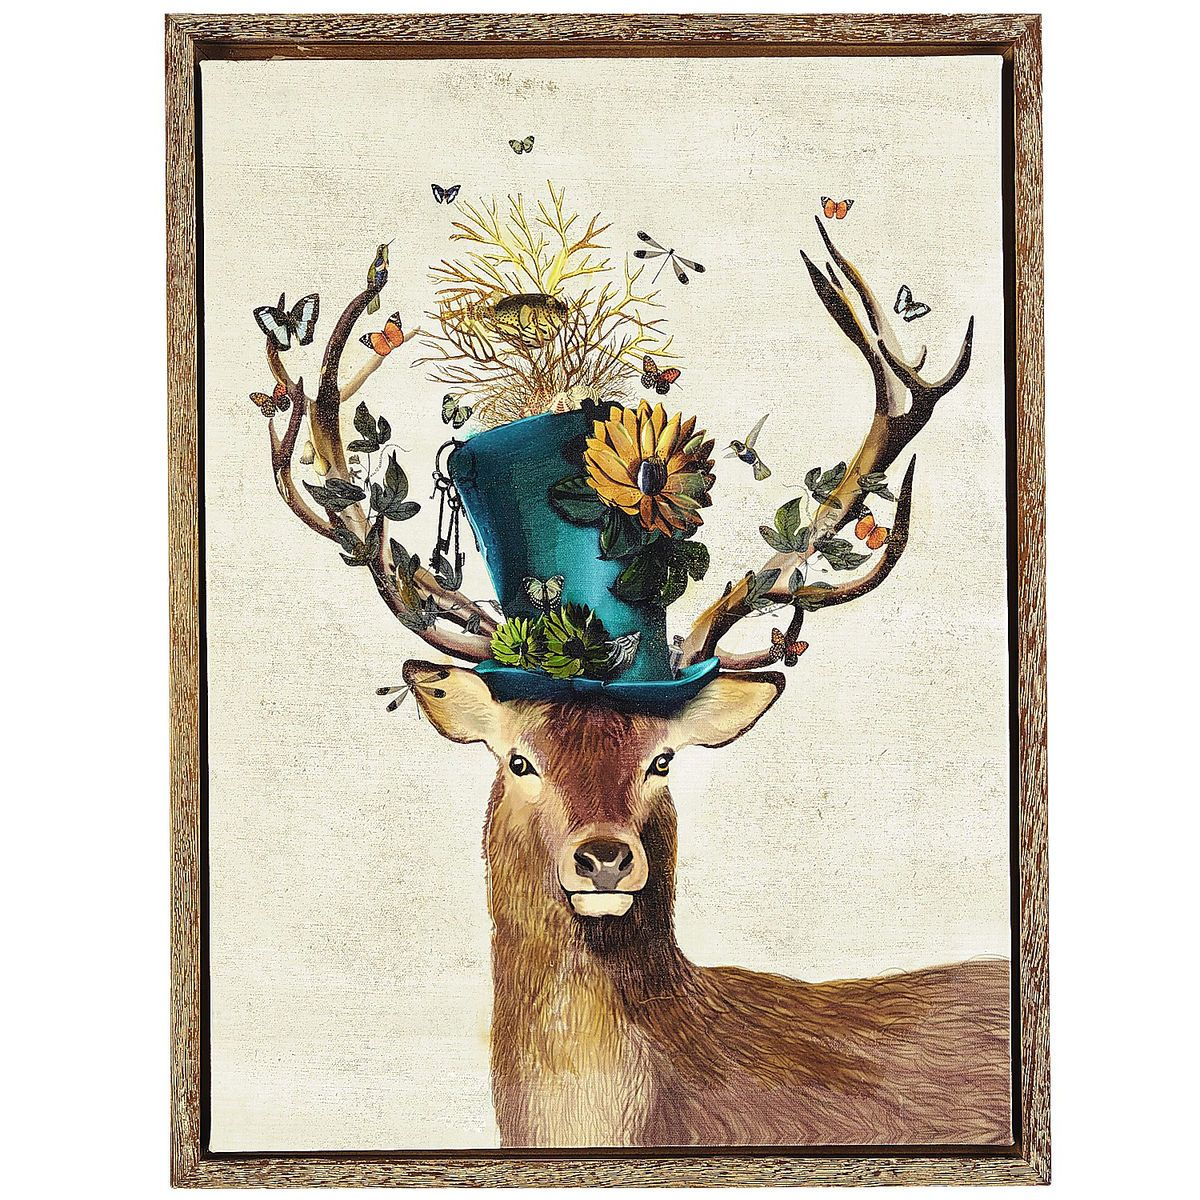 dashing deer art pier 1 imports home stuff deer wall art art deer art. Black Bedroom Furniture Sets. Home Design Ideas